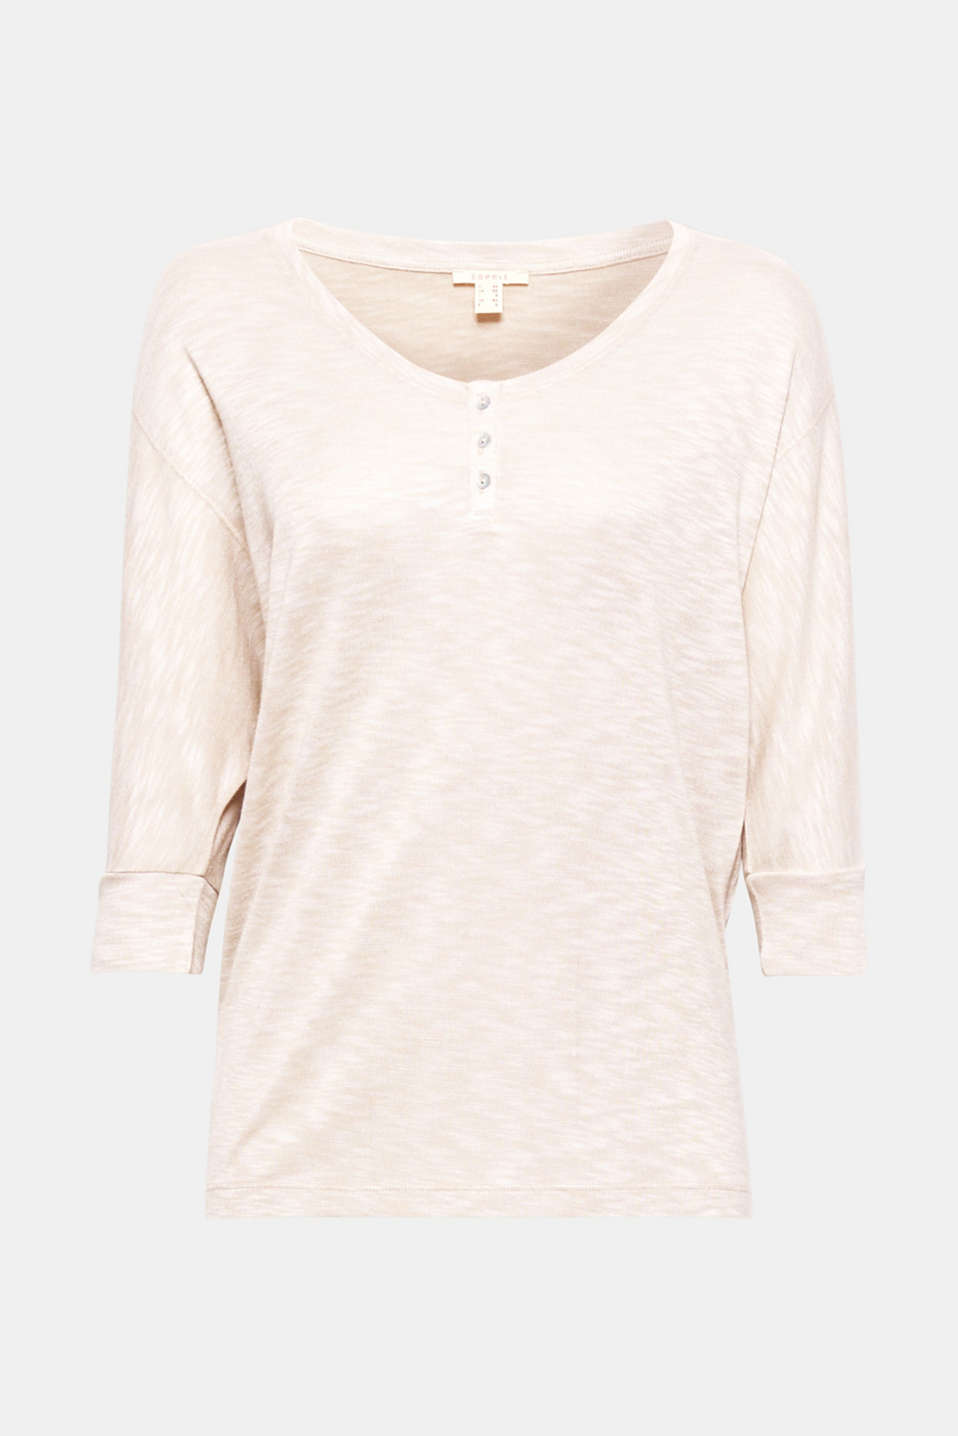 This batwing top in a silky, textured slub jersey with a V-neck and button placket is particularly lightweight, soft and snug!